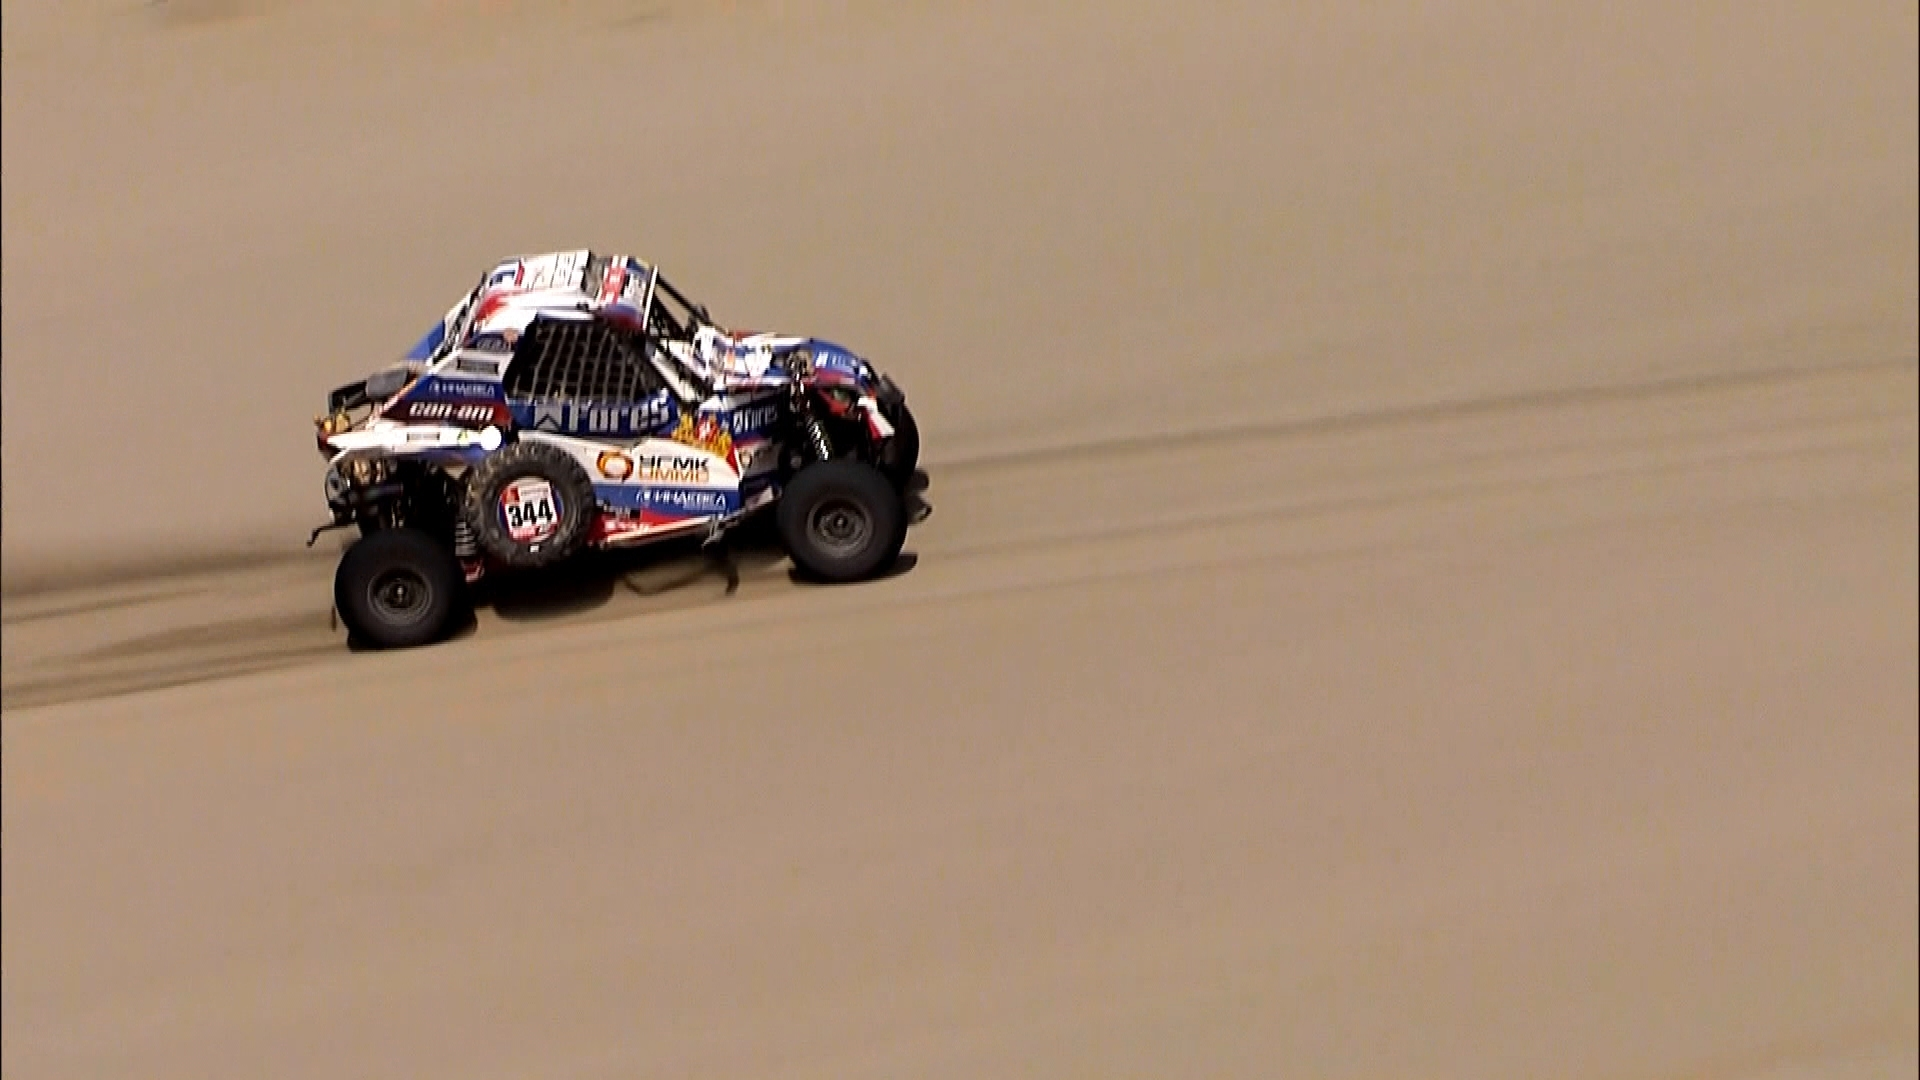 Dakar Rally: Casey Currie fixes broken Can-Am in side-by-sides class